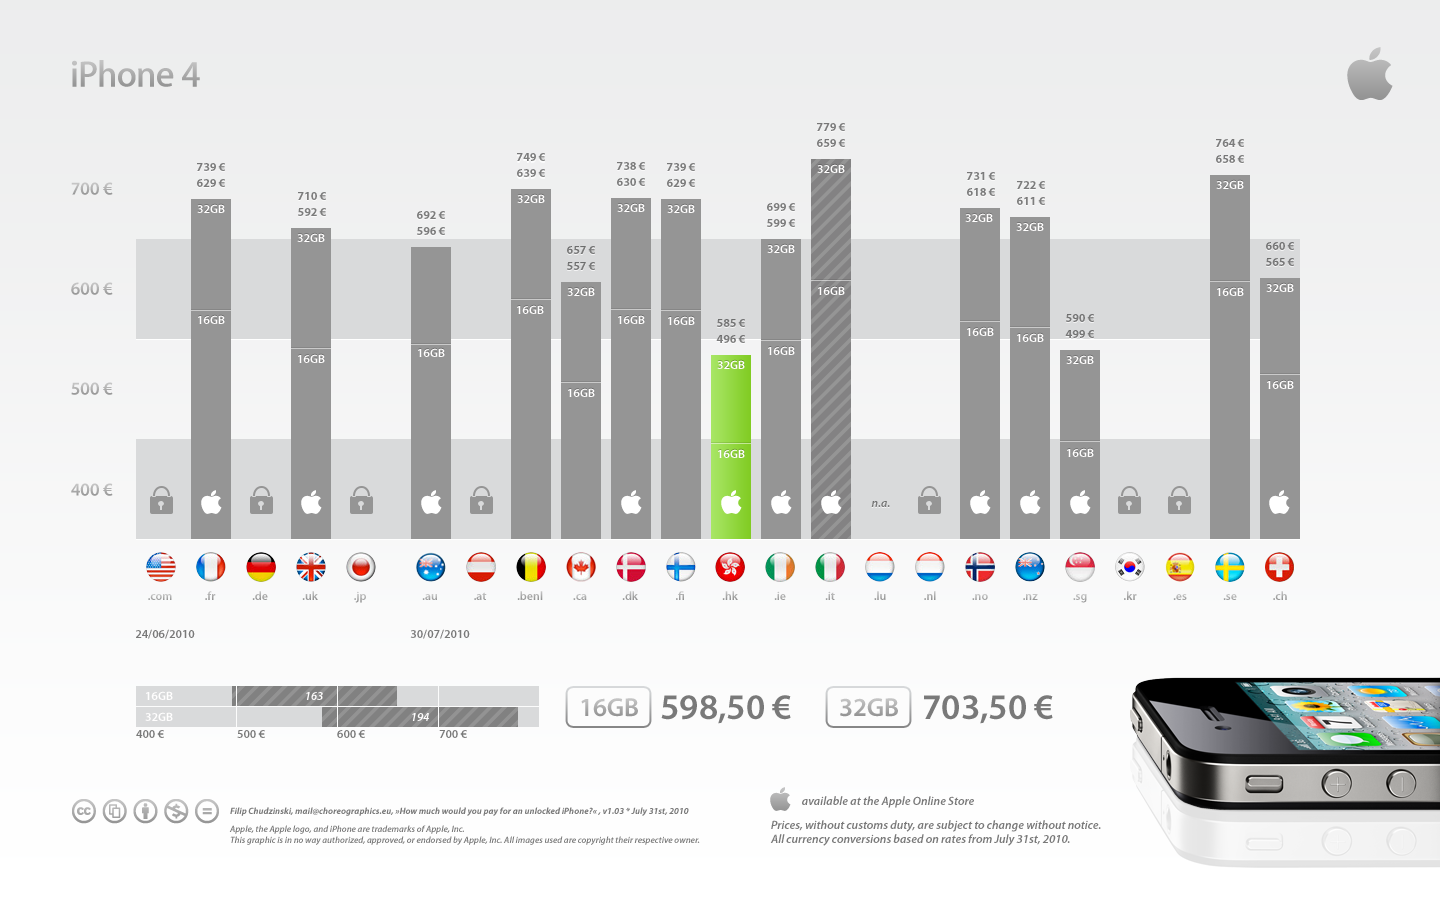 4836719813 f2cfc2b5d0 o Chart: How Much For An Unlocked iPhone 4 Around The Globe?